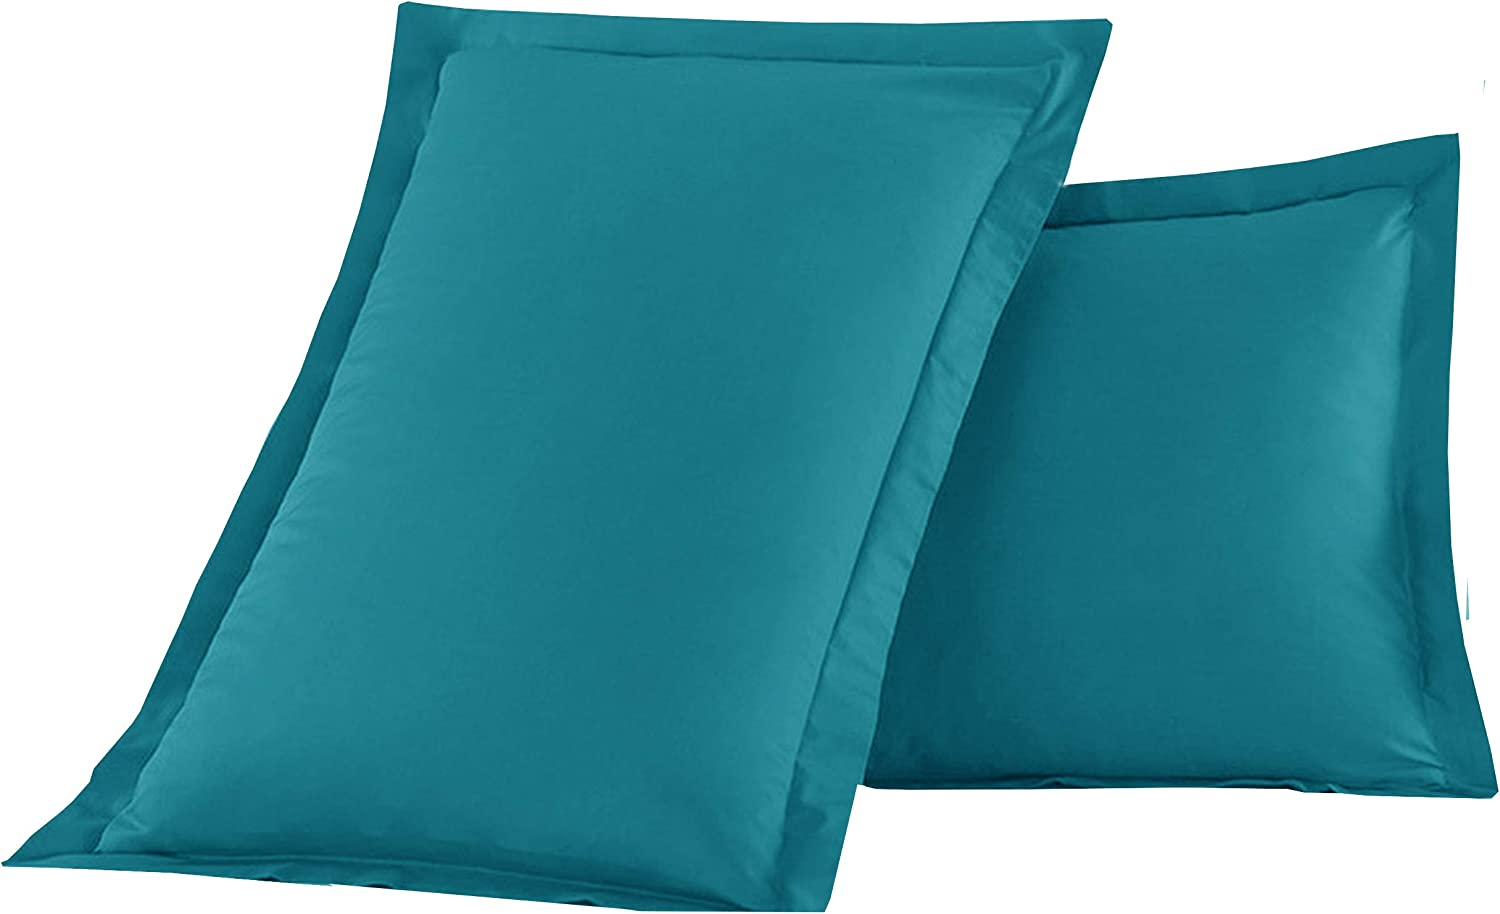 Turquoise King Size Luxury Ultra-Soft Premium Hotel Quality 2-Piece Pillow Shams Microfiber Double Brushed-100/% Hypoallergenic-Wrinkle Resistant